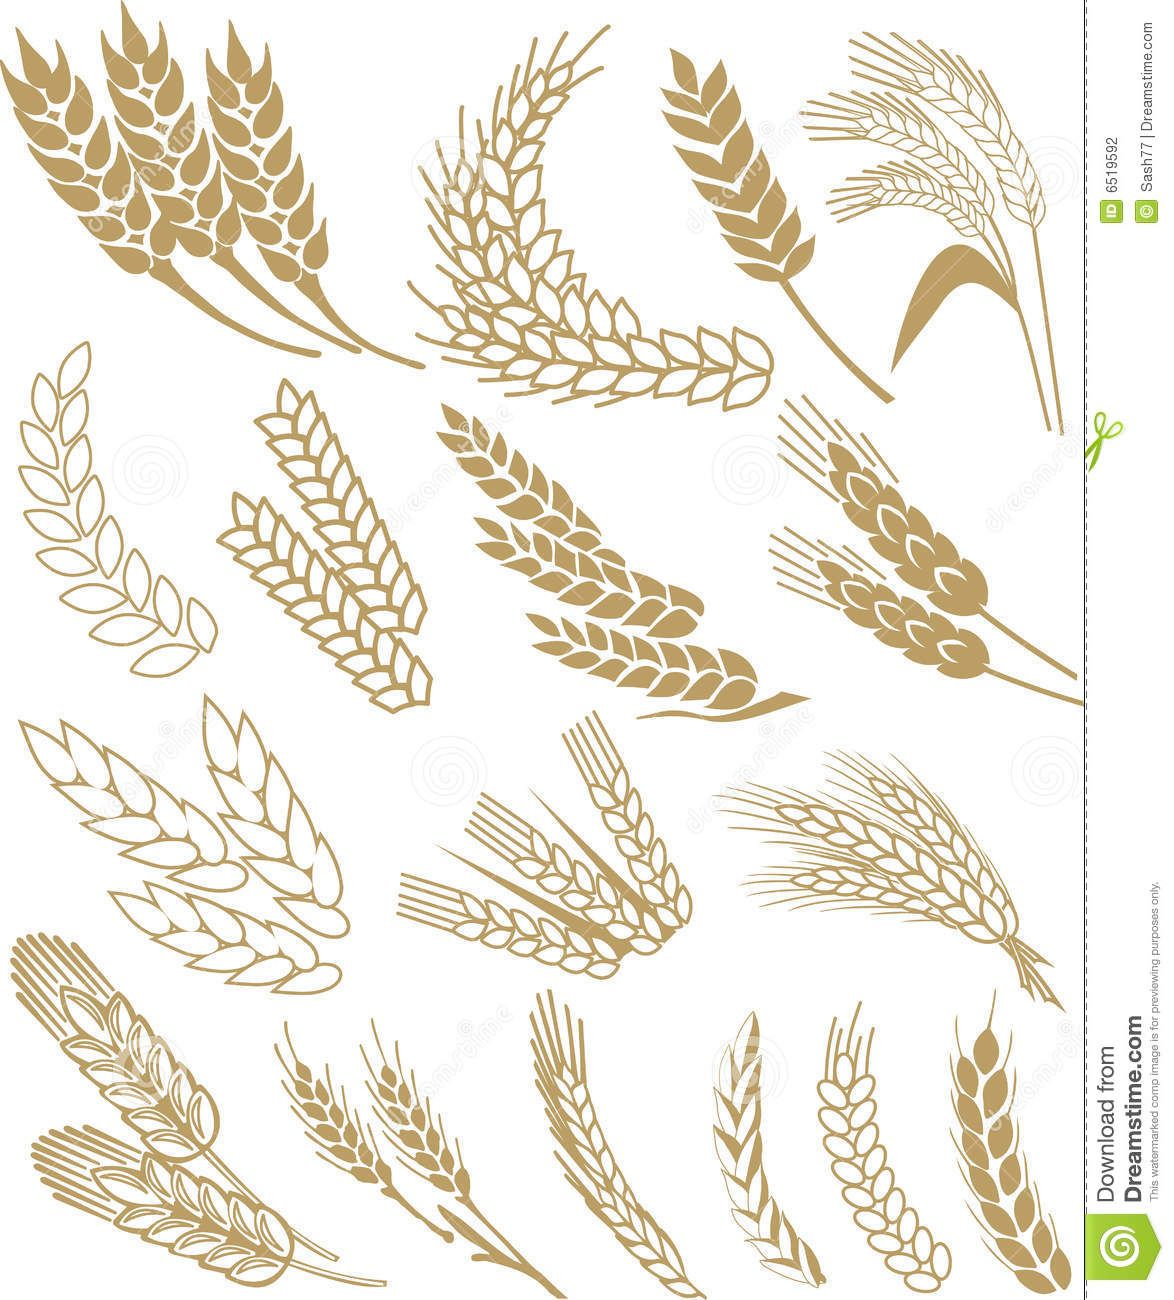 Wheat Vector Download From Over 59 Million High Quality Stock Photos Images Vectors Sign Up For Free Today Image Wheat Vector Wheat Drawing Wheat Tattoo